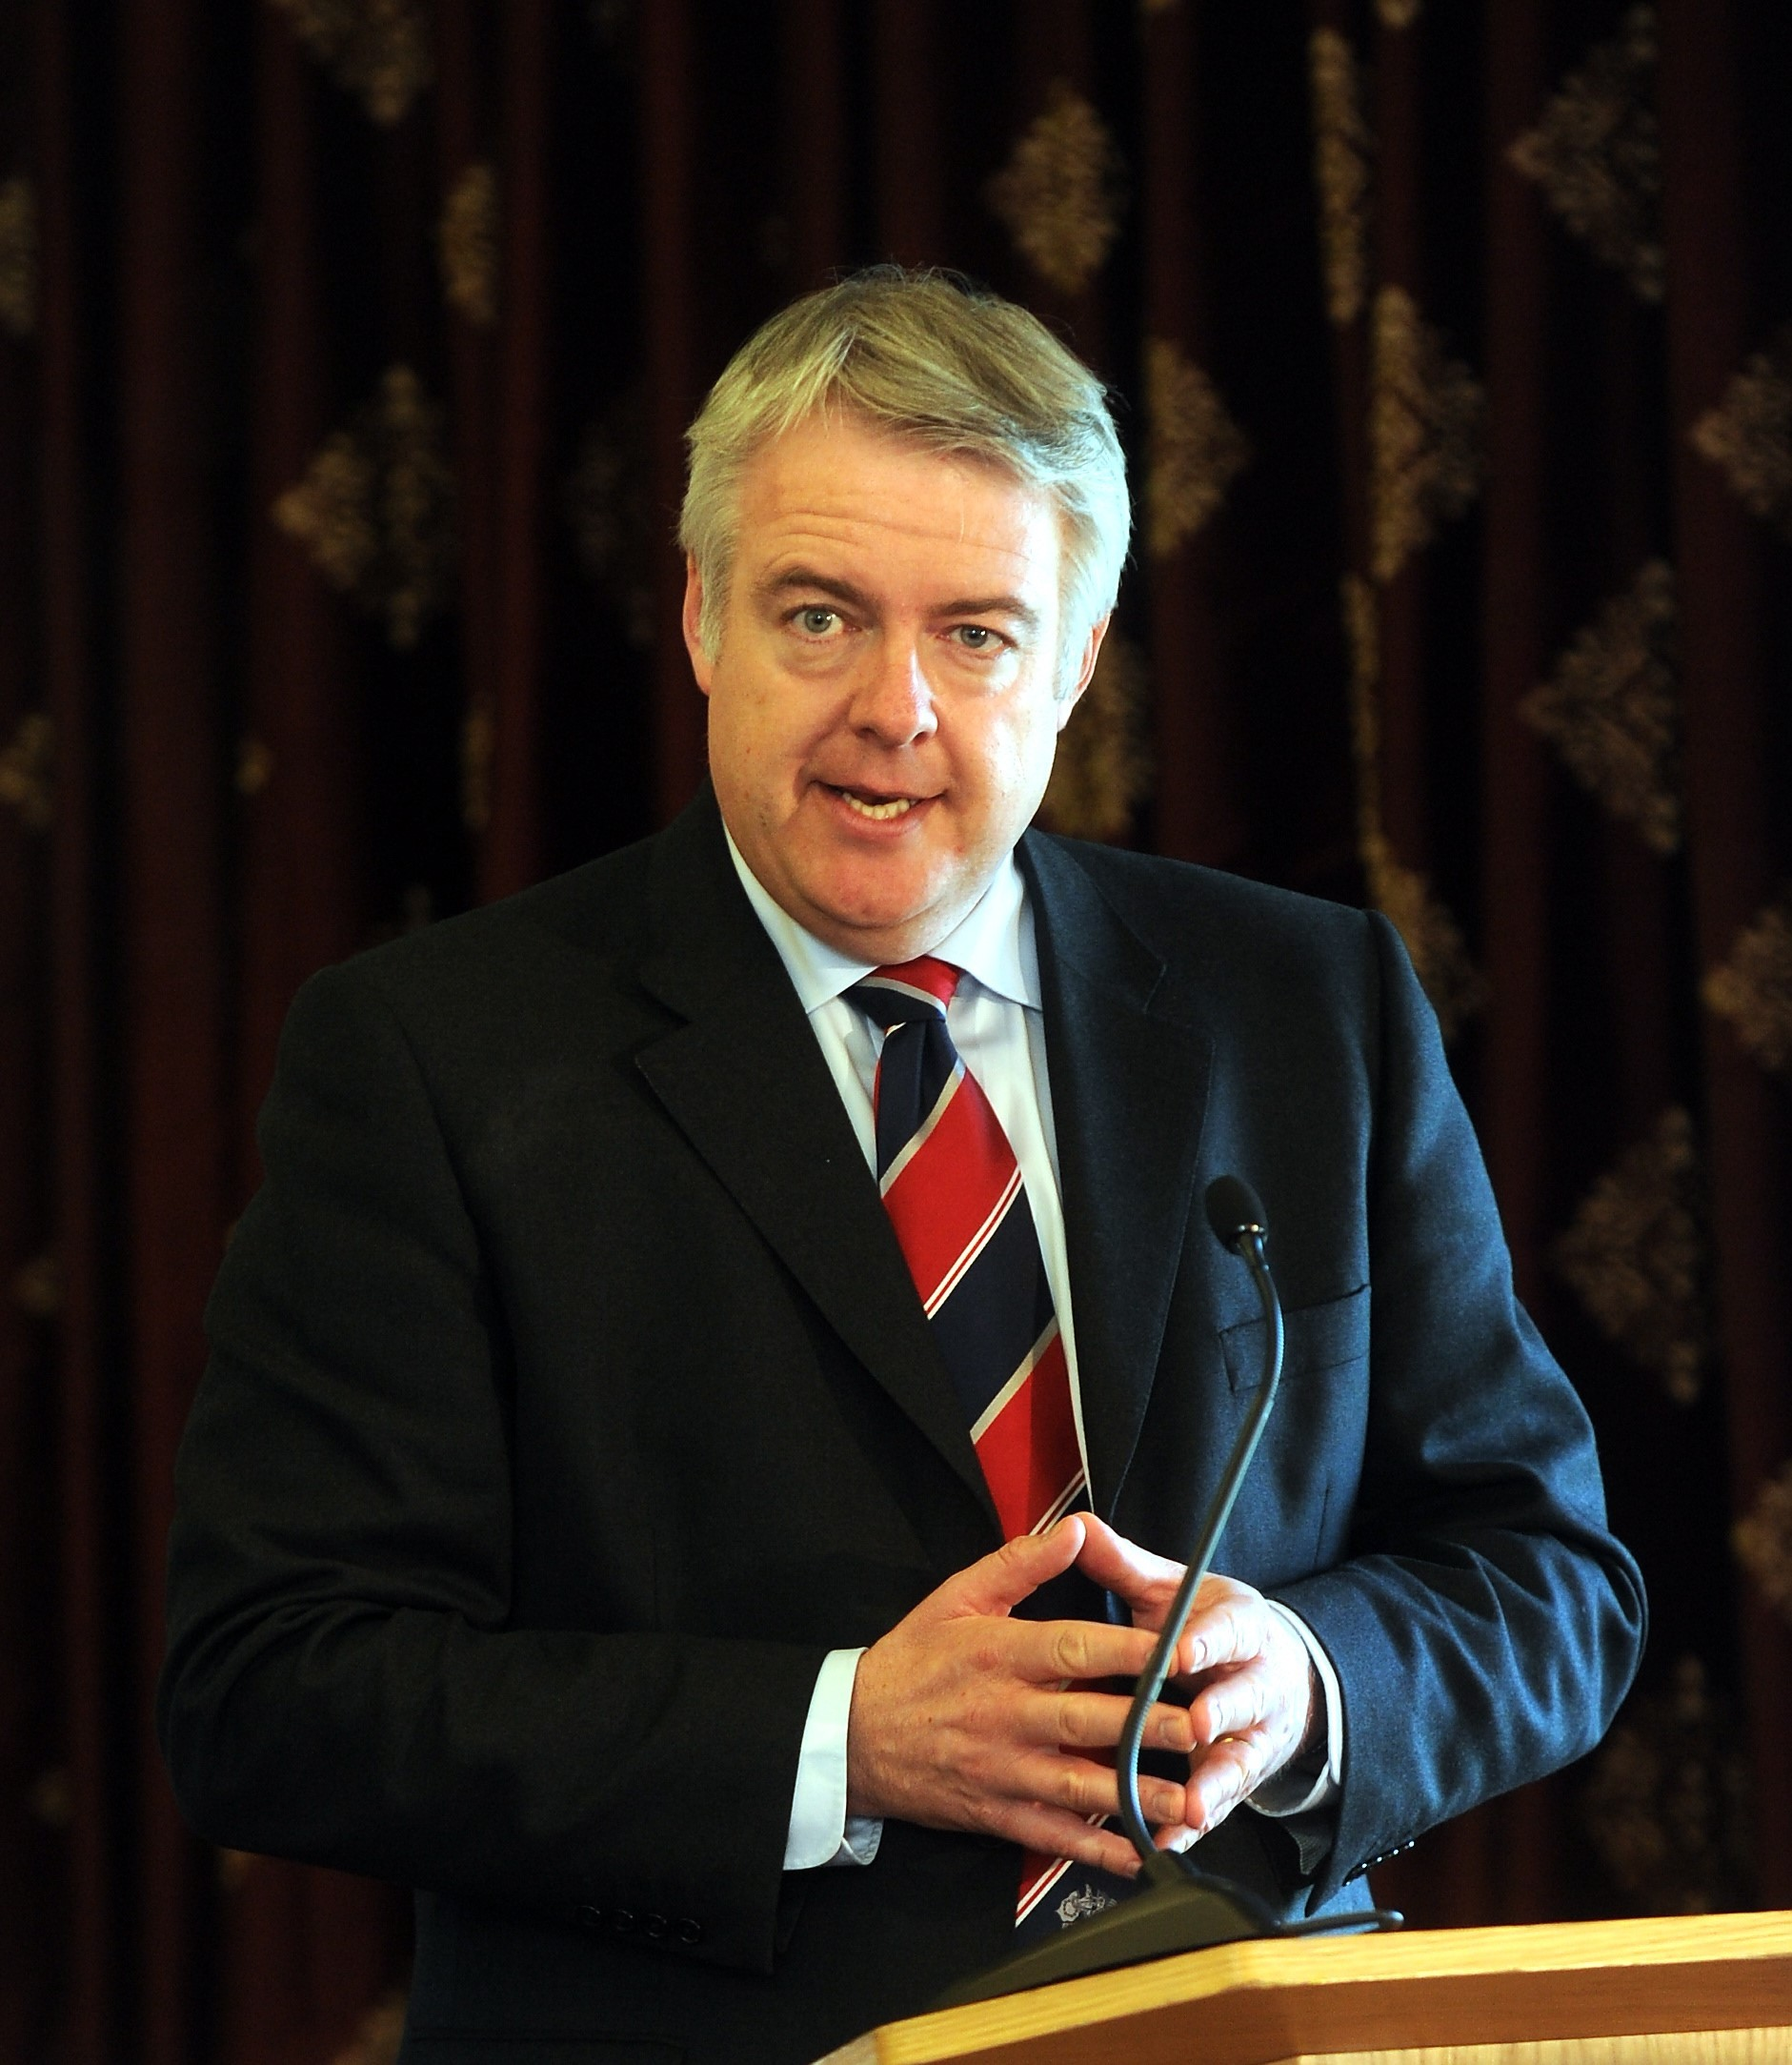 Argus-Mark   Reporter-Nat   23-03-11 Ryder Cup economic report  Carwyn Jones  (7985733)